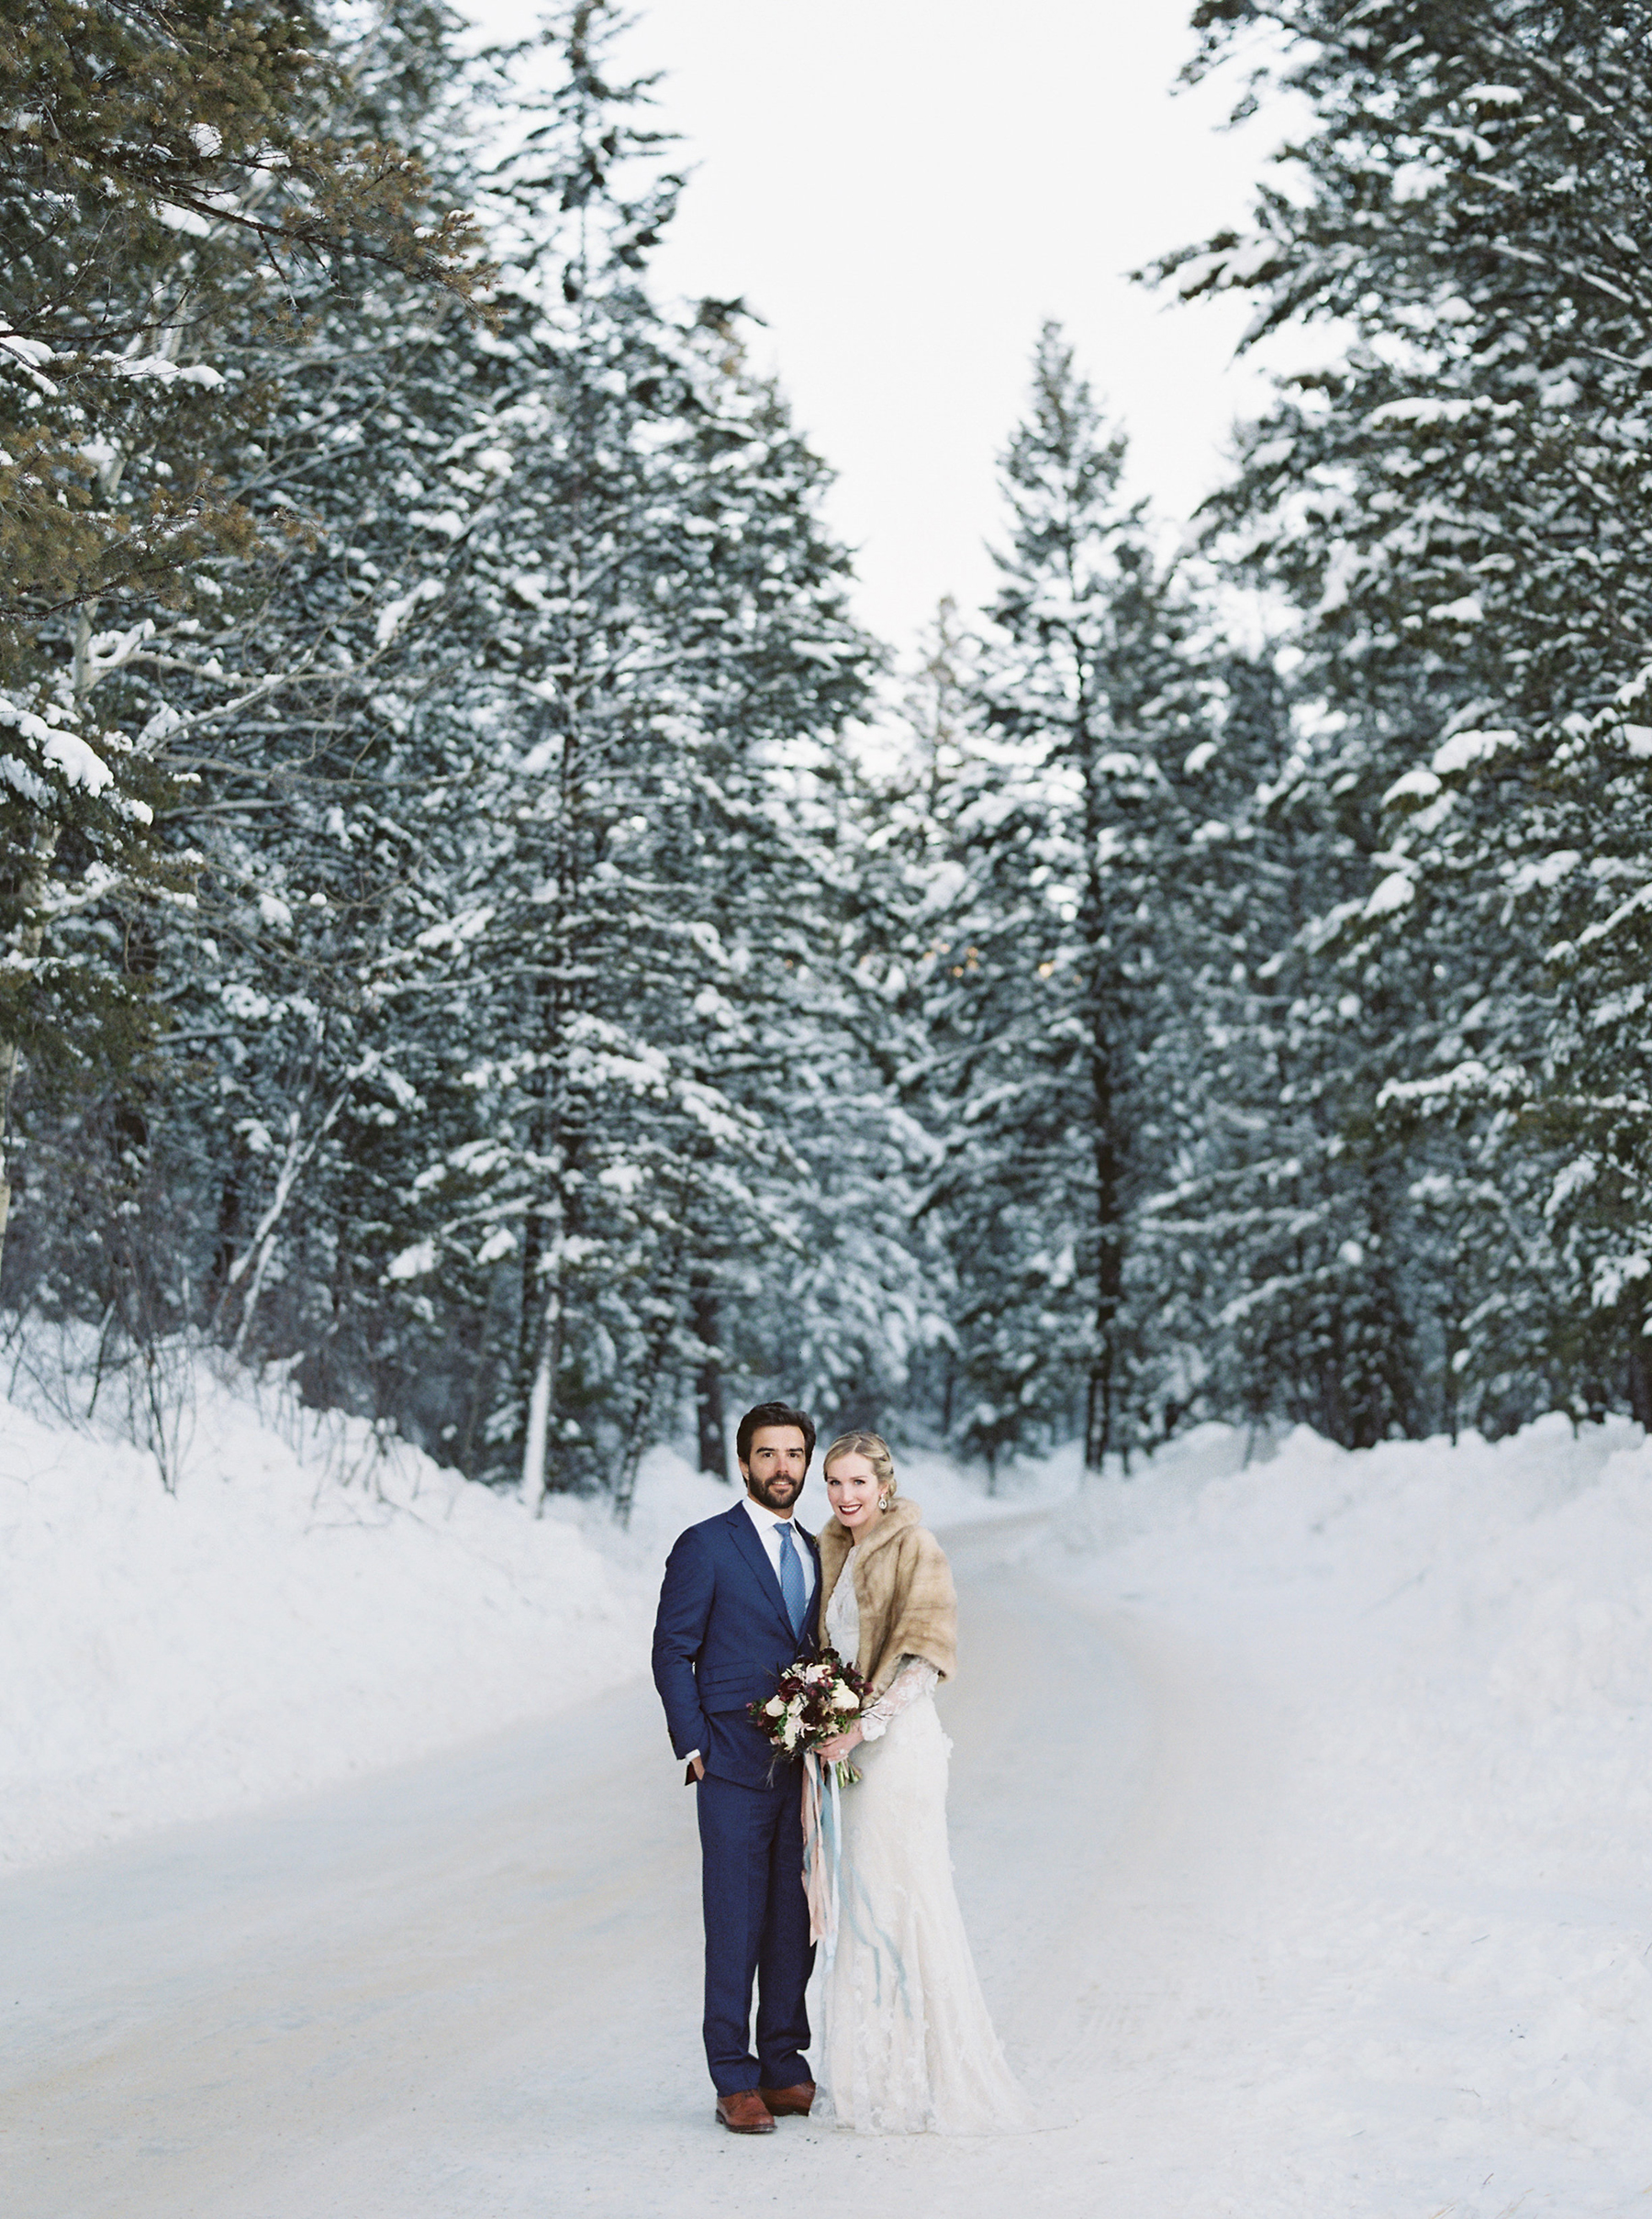 Bride and Groom in front of Evergreens